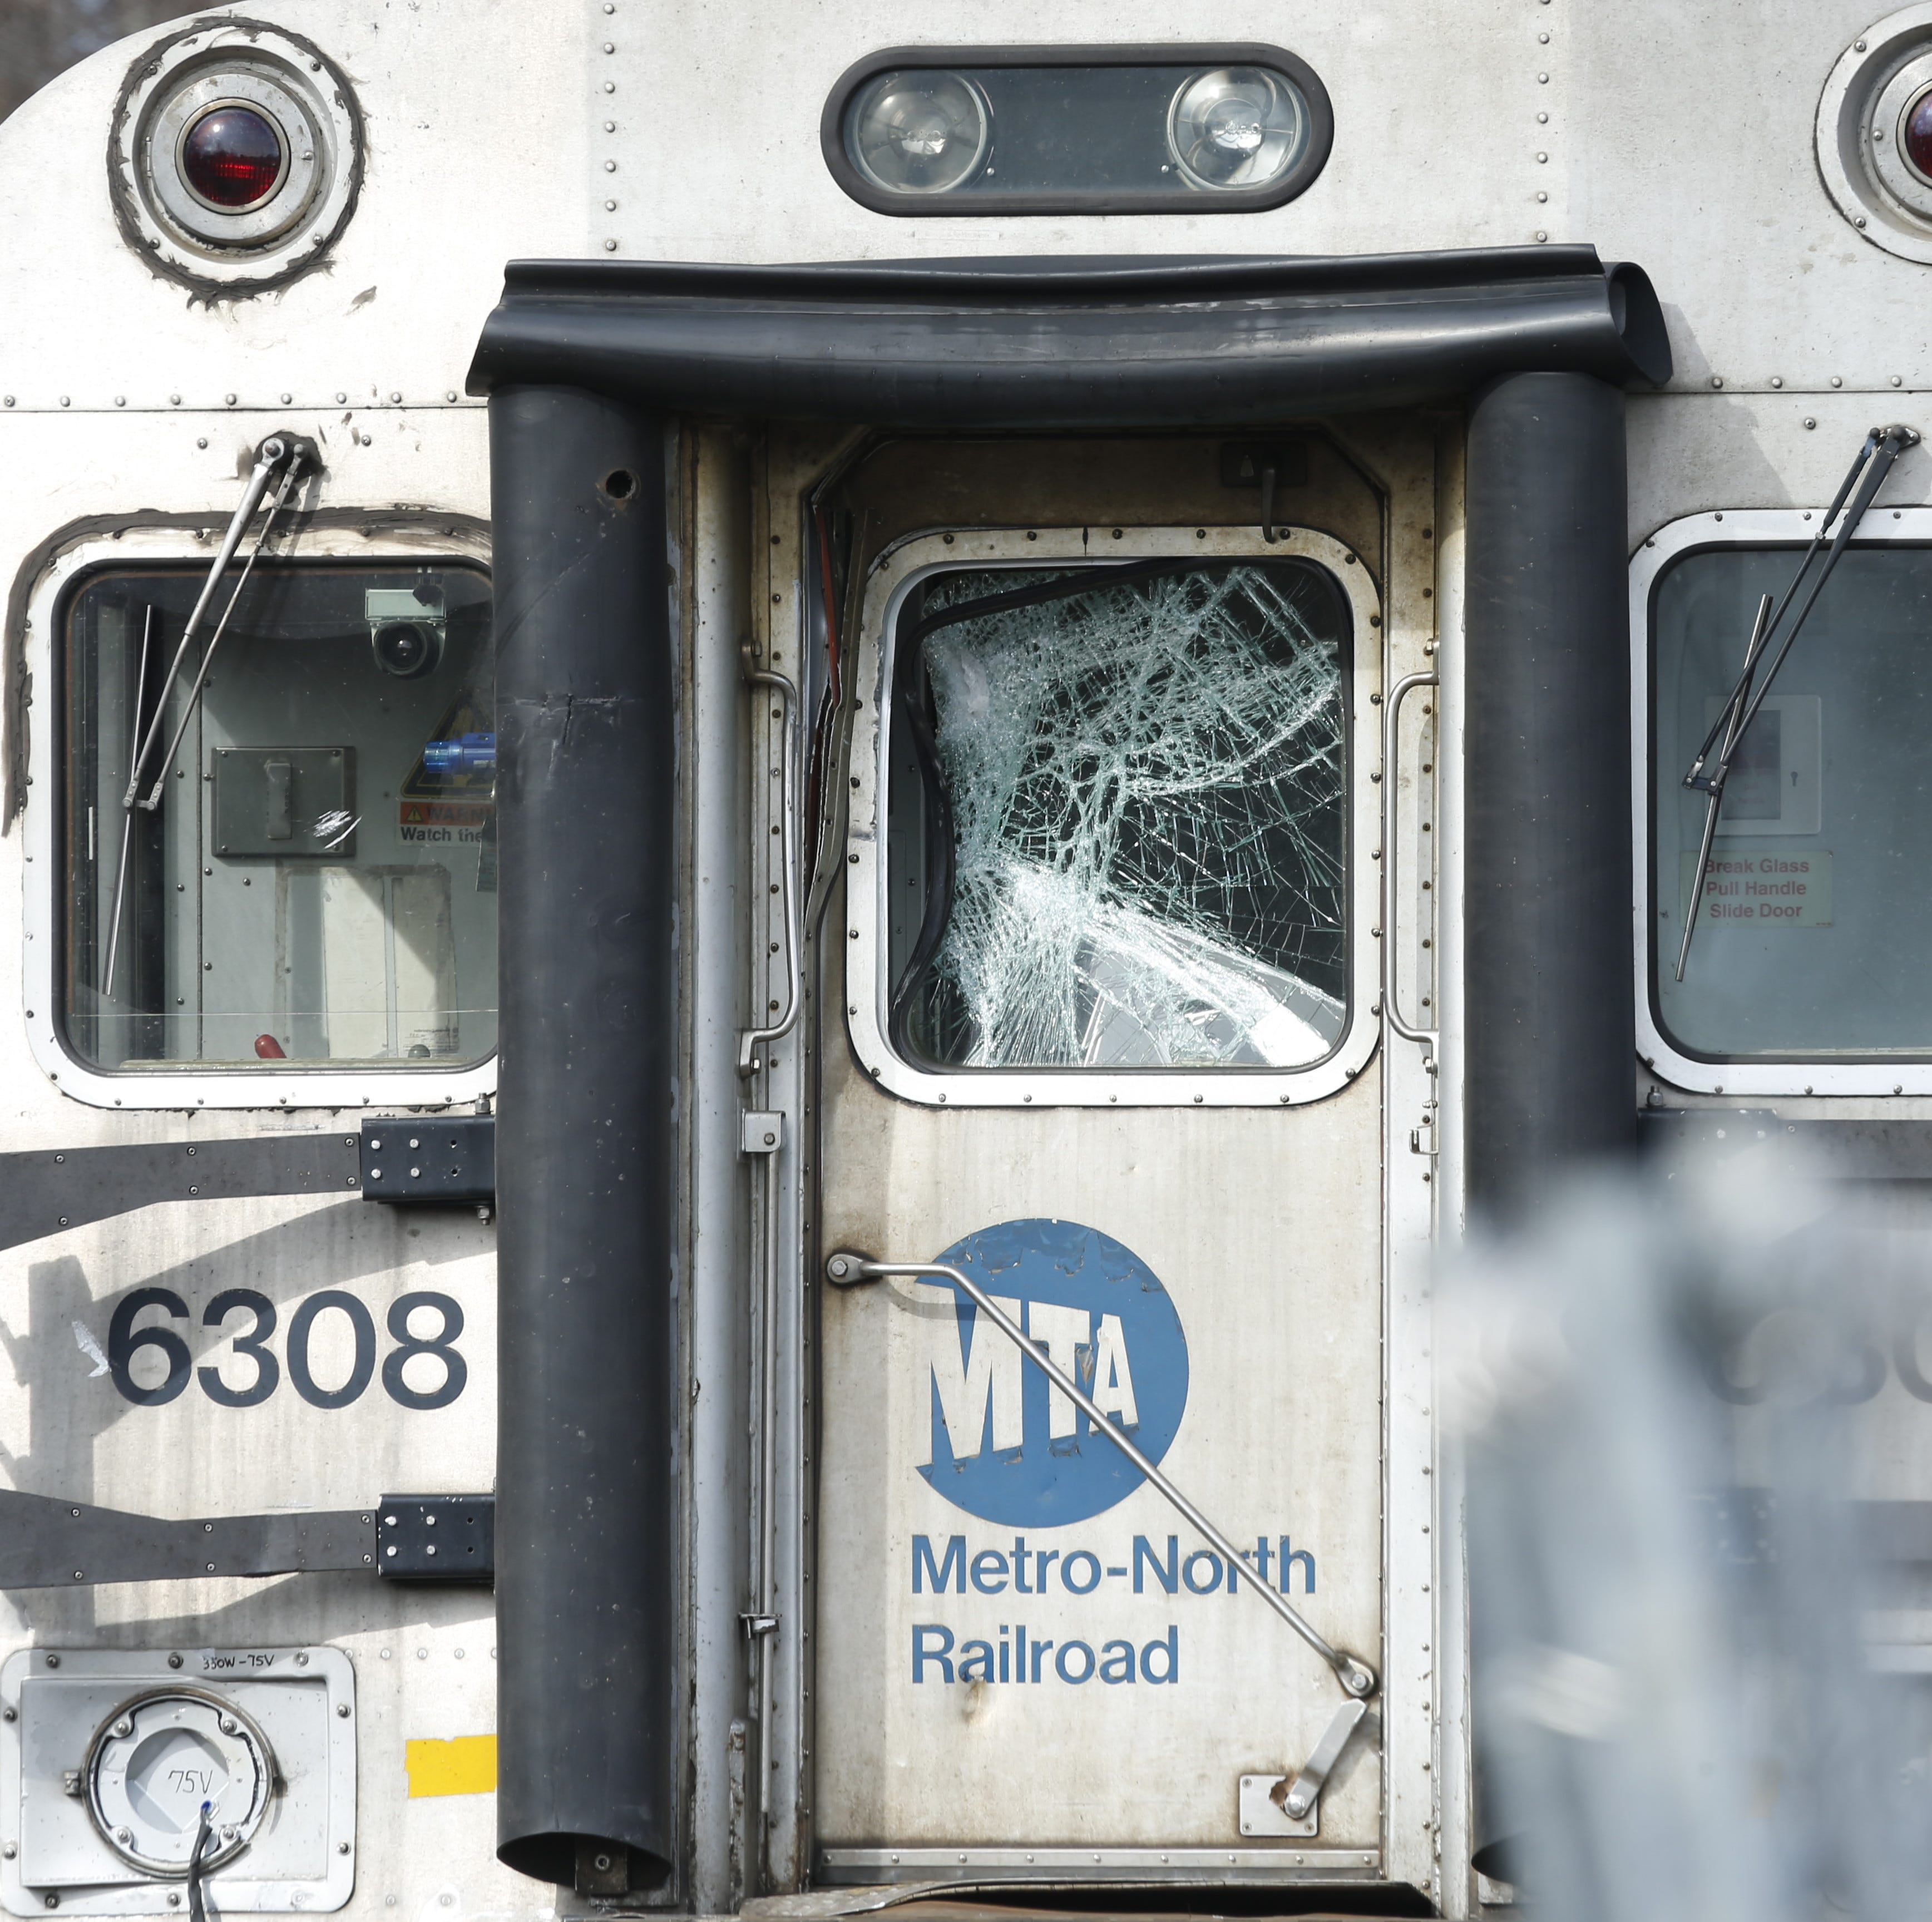 Harlem Line train struck trailer in Pawling, one injured: MTA